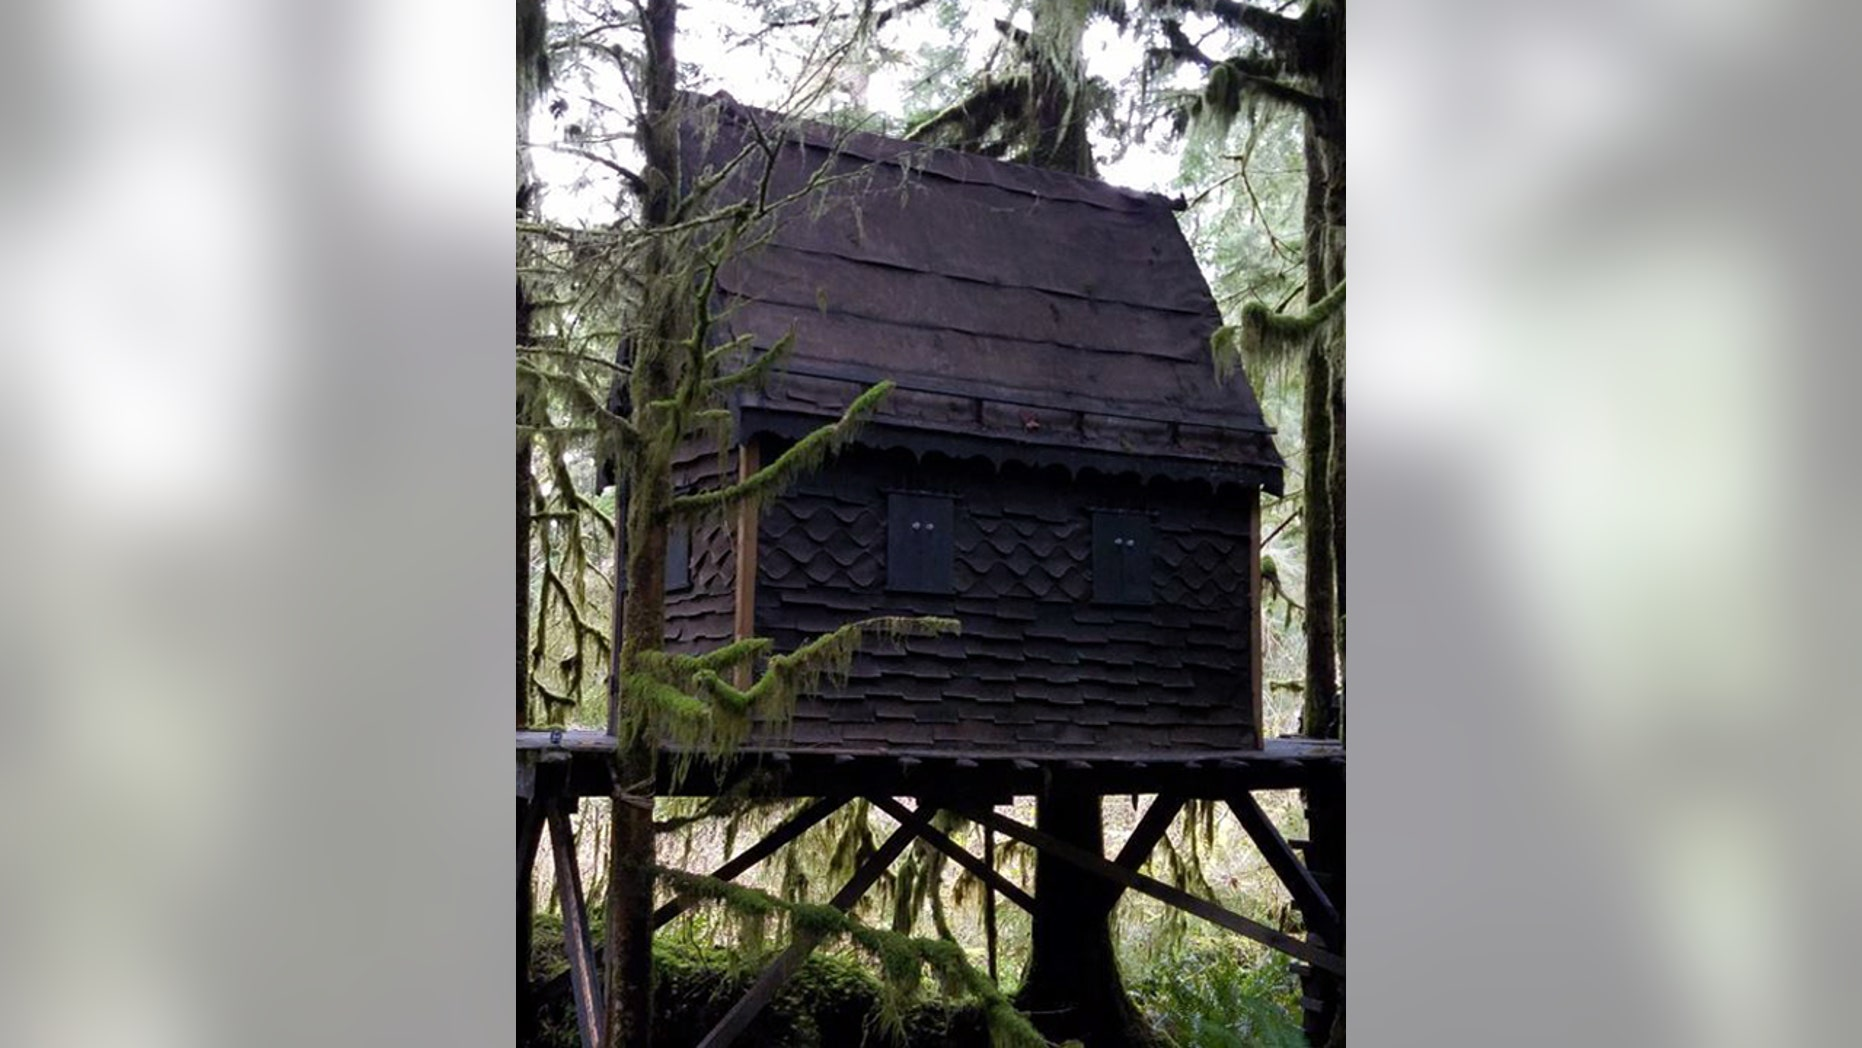 The 'treehouse' in Washington state's Snoqualmie National Forest.